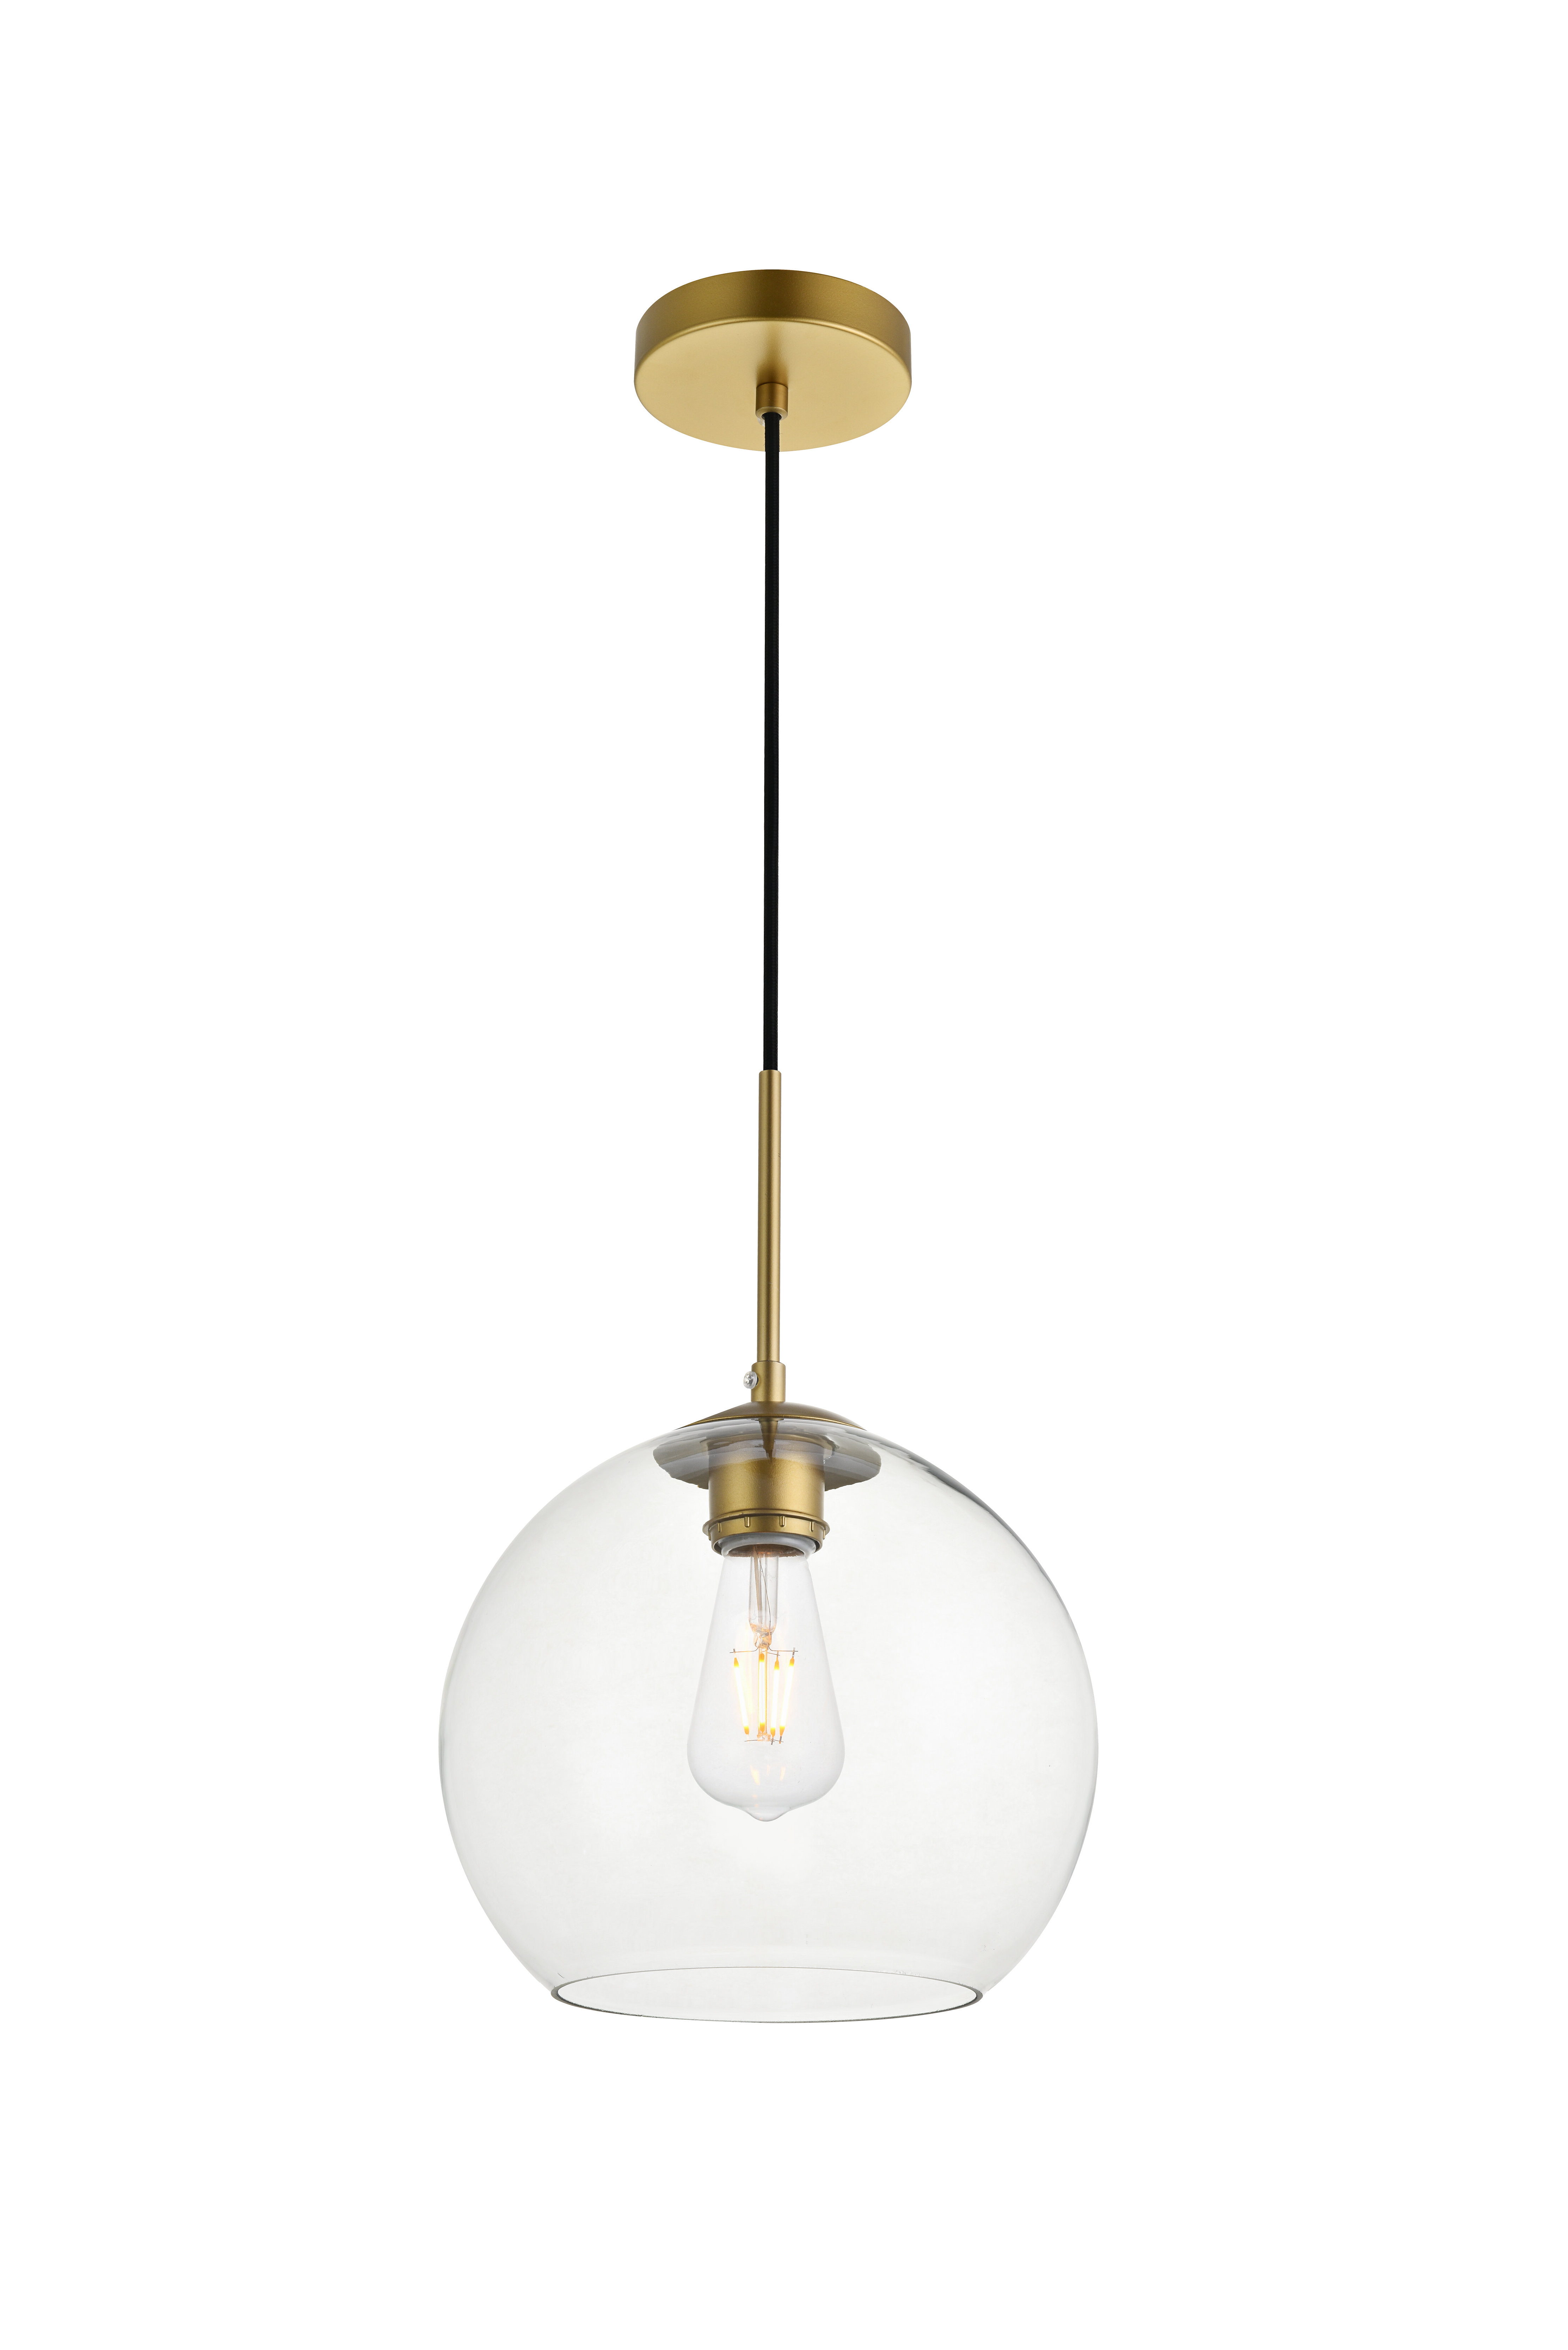 Yearwood 1 Light Single Globe Pendant Inside Widely Used Betsy 1 Light Single Globe Pendants (Gallery 5 of 20)